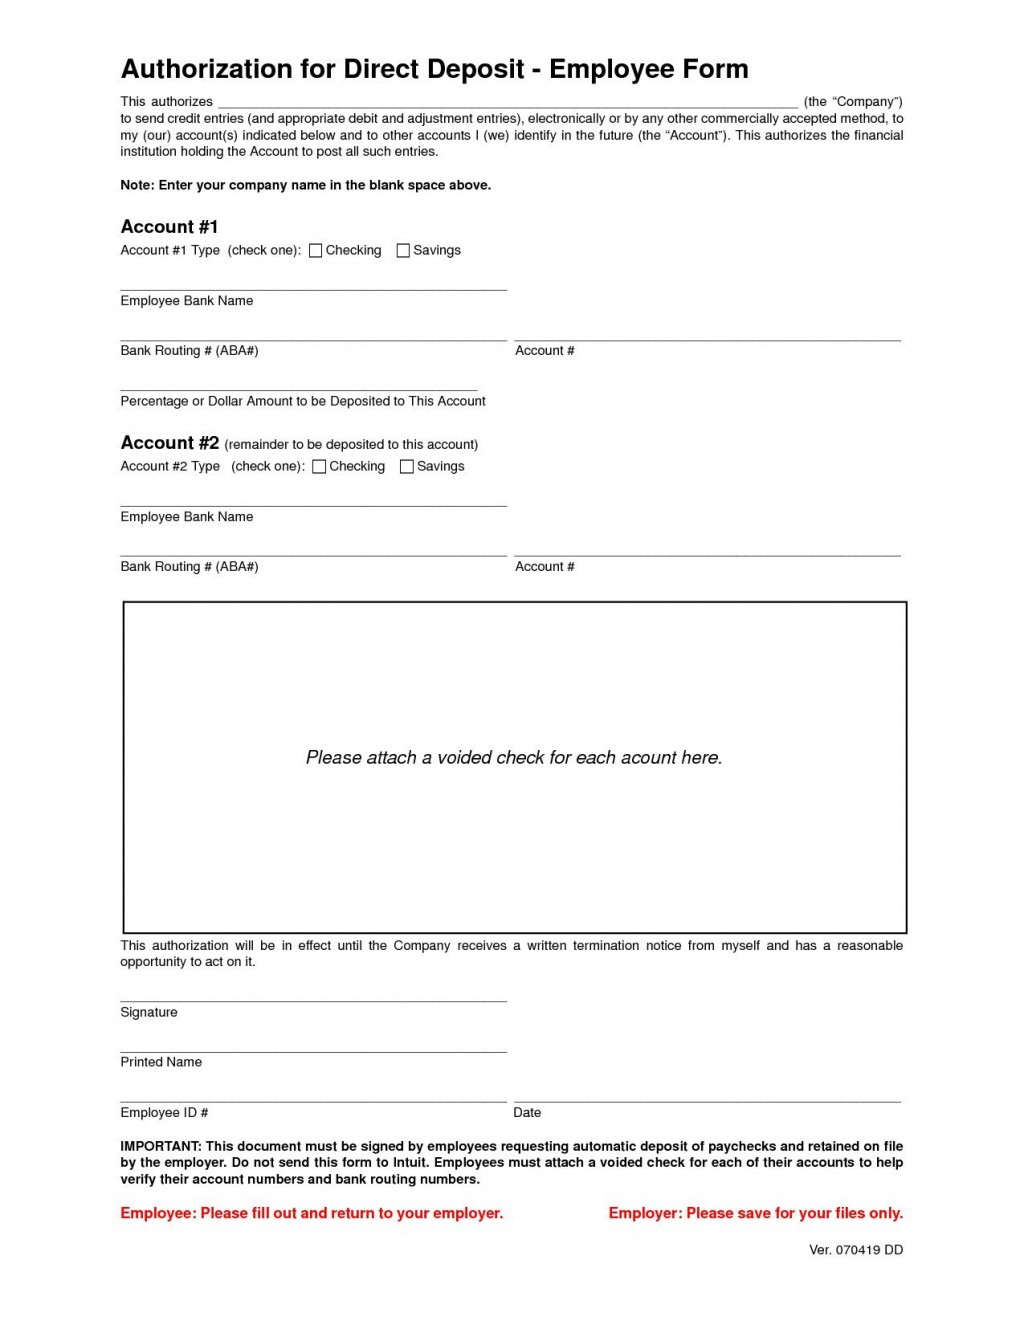 001 Stunning Direct Deposit Form Template Highest Quality  Multiple Account Ach AuthorizationLarge